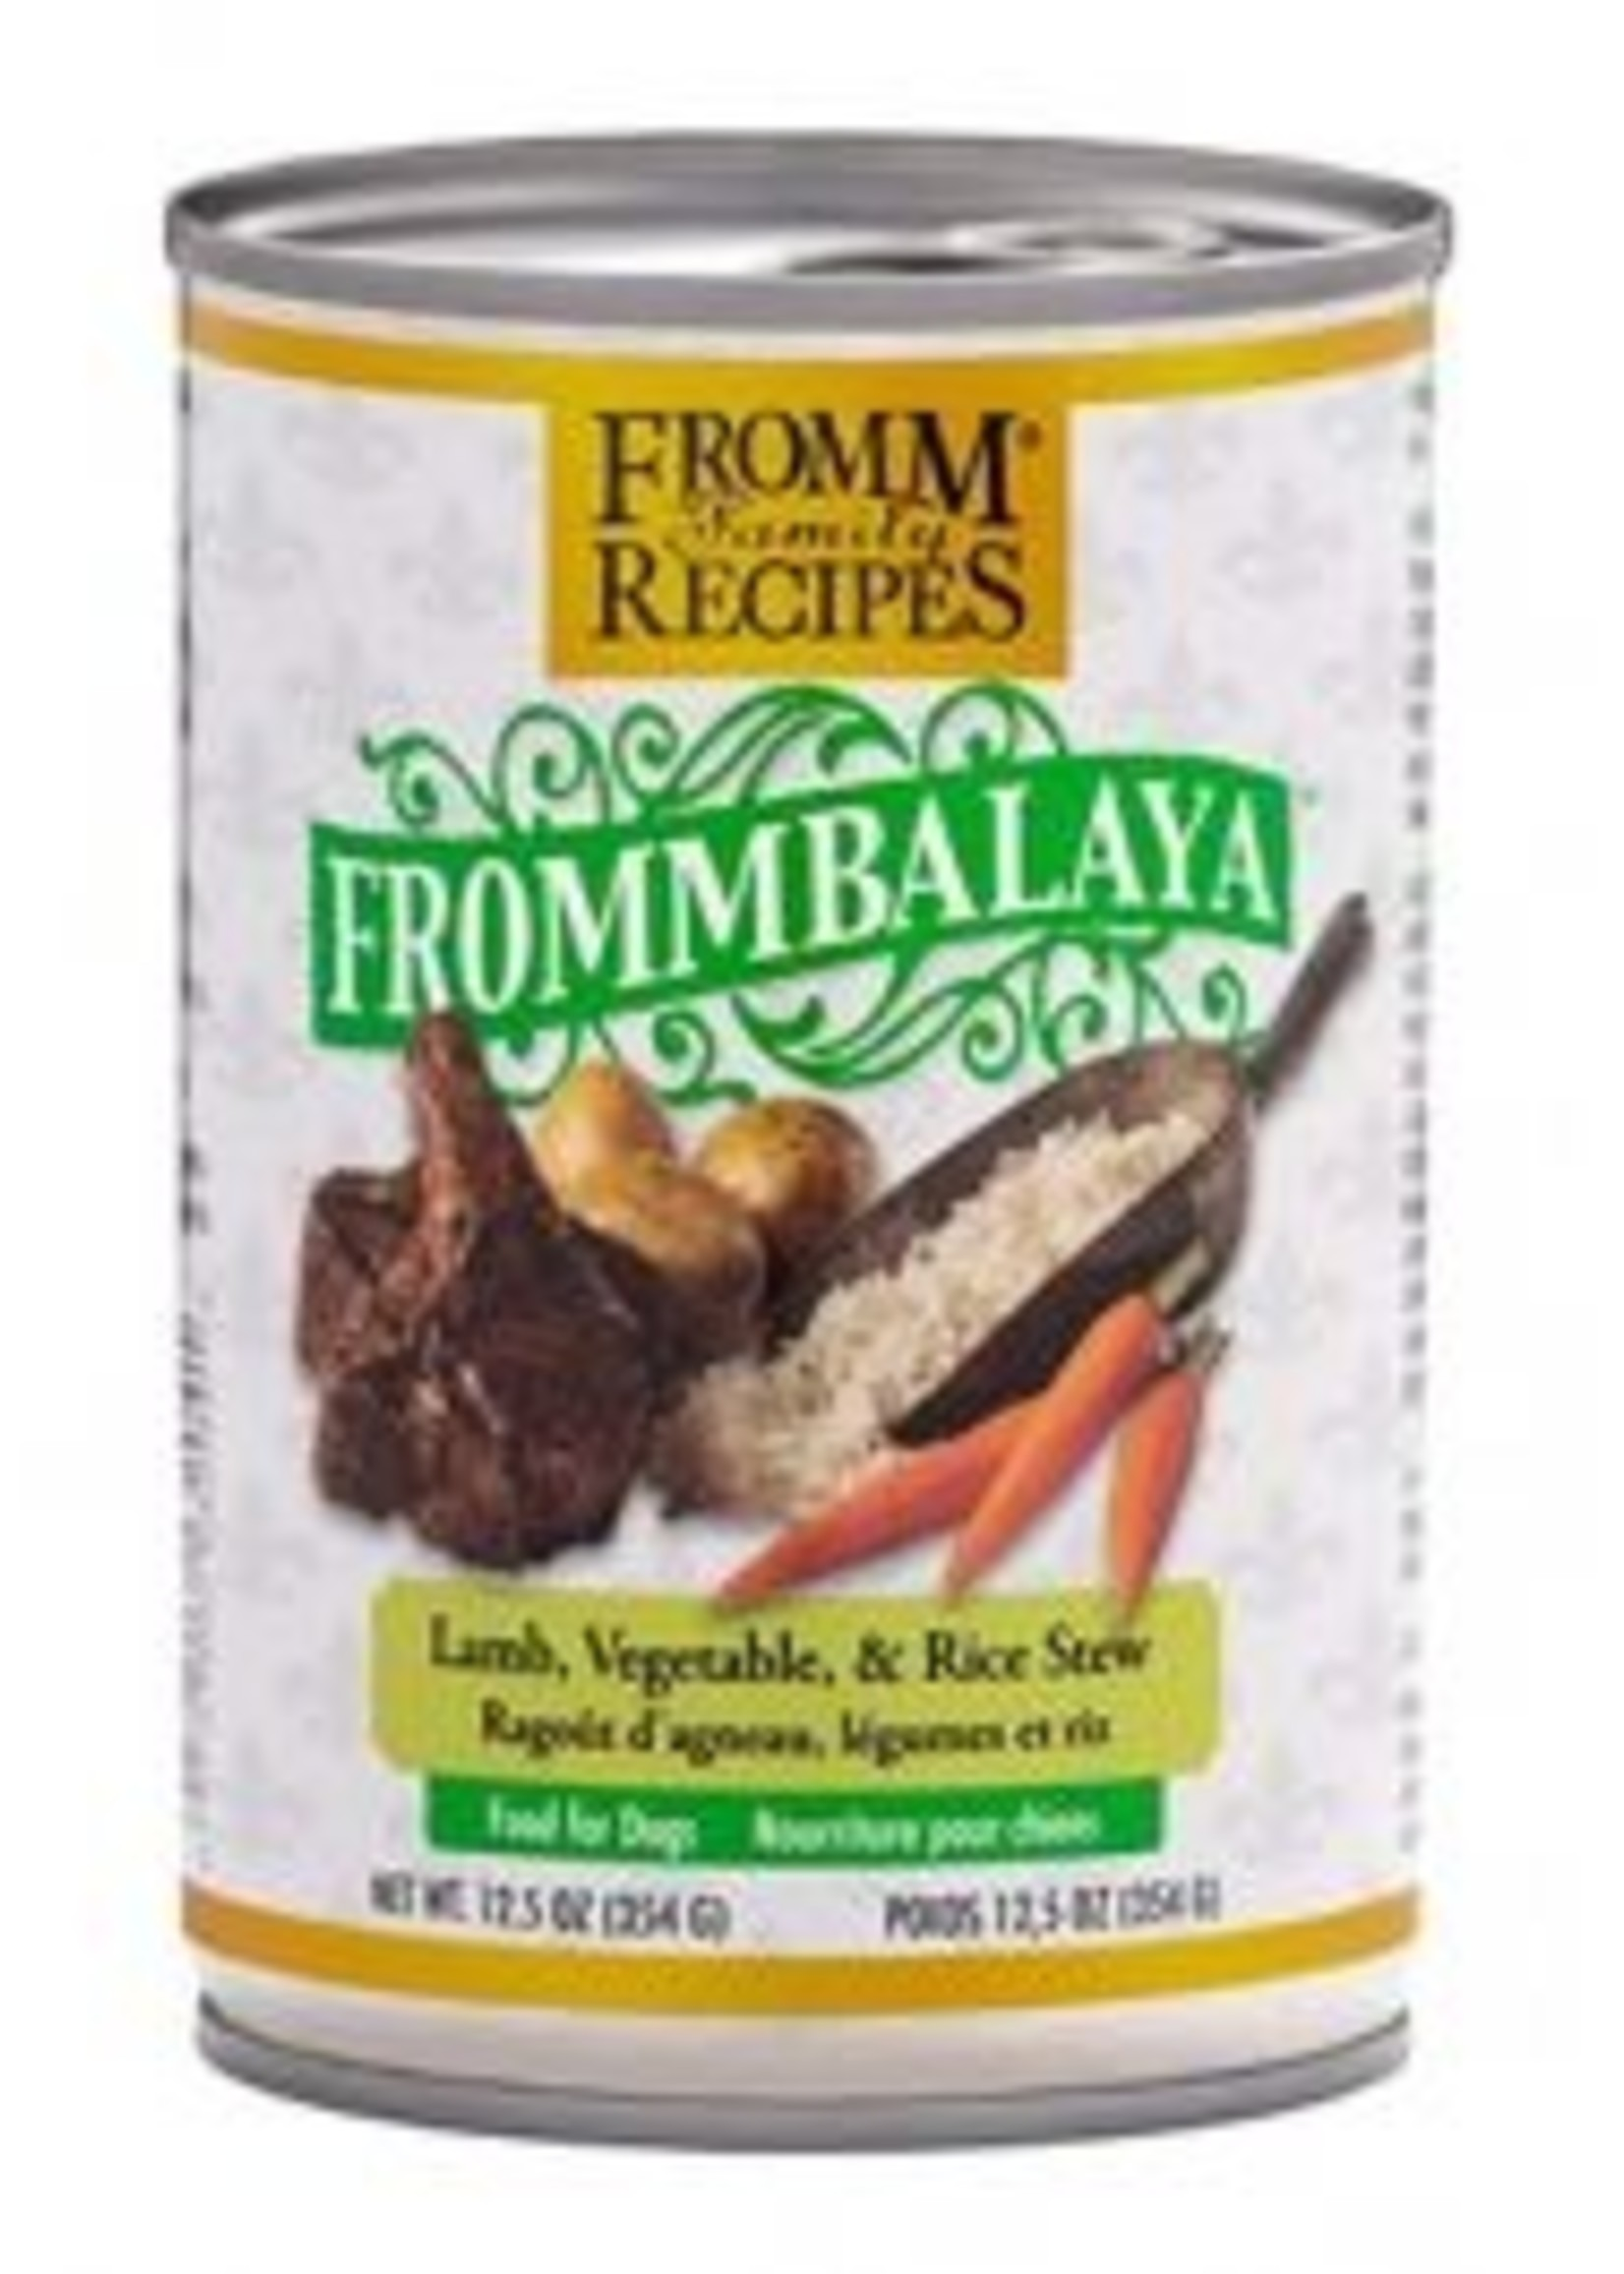 Fromm Family Foods, LLC Fromm Frommbalaya Lamb Vegetable Rice 12.5oz